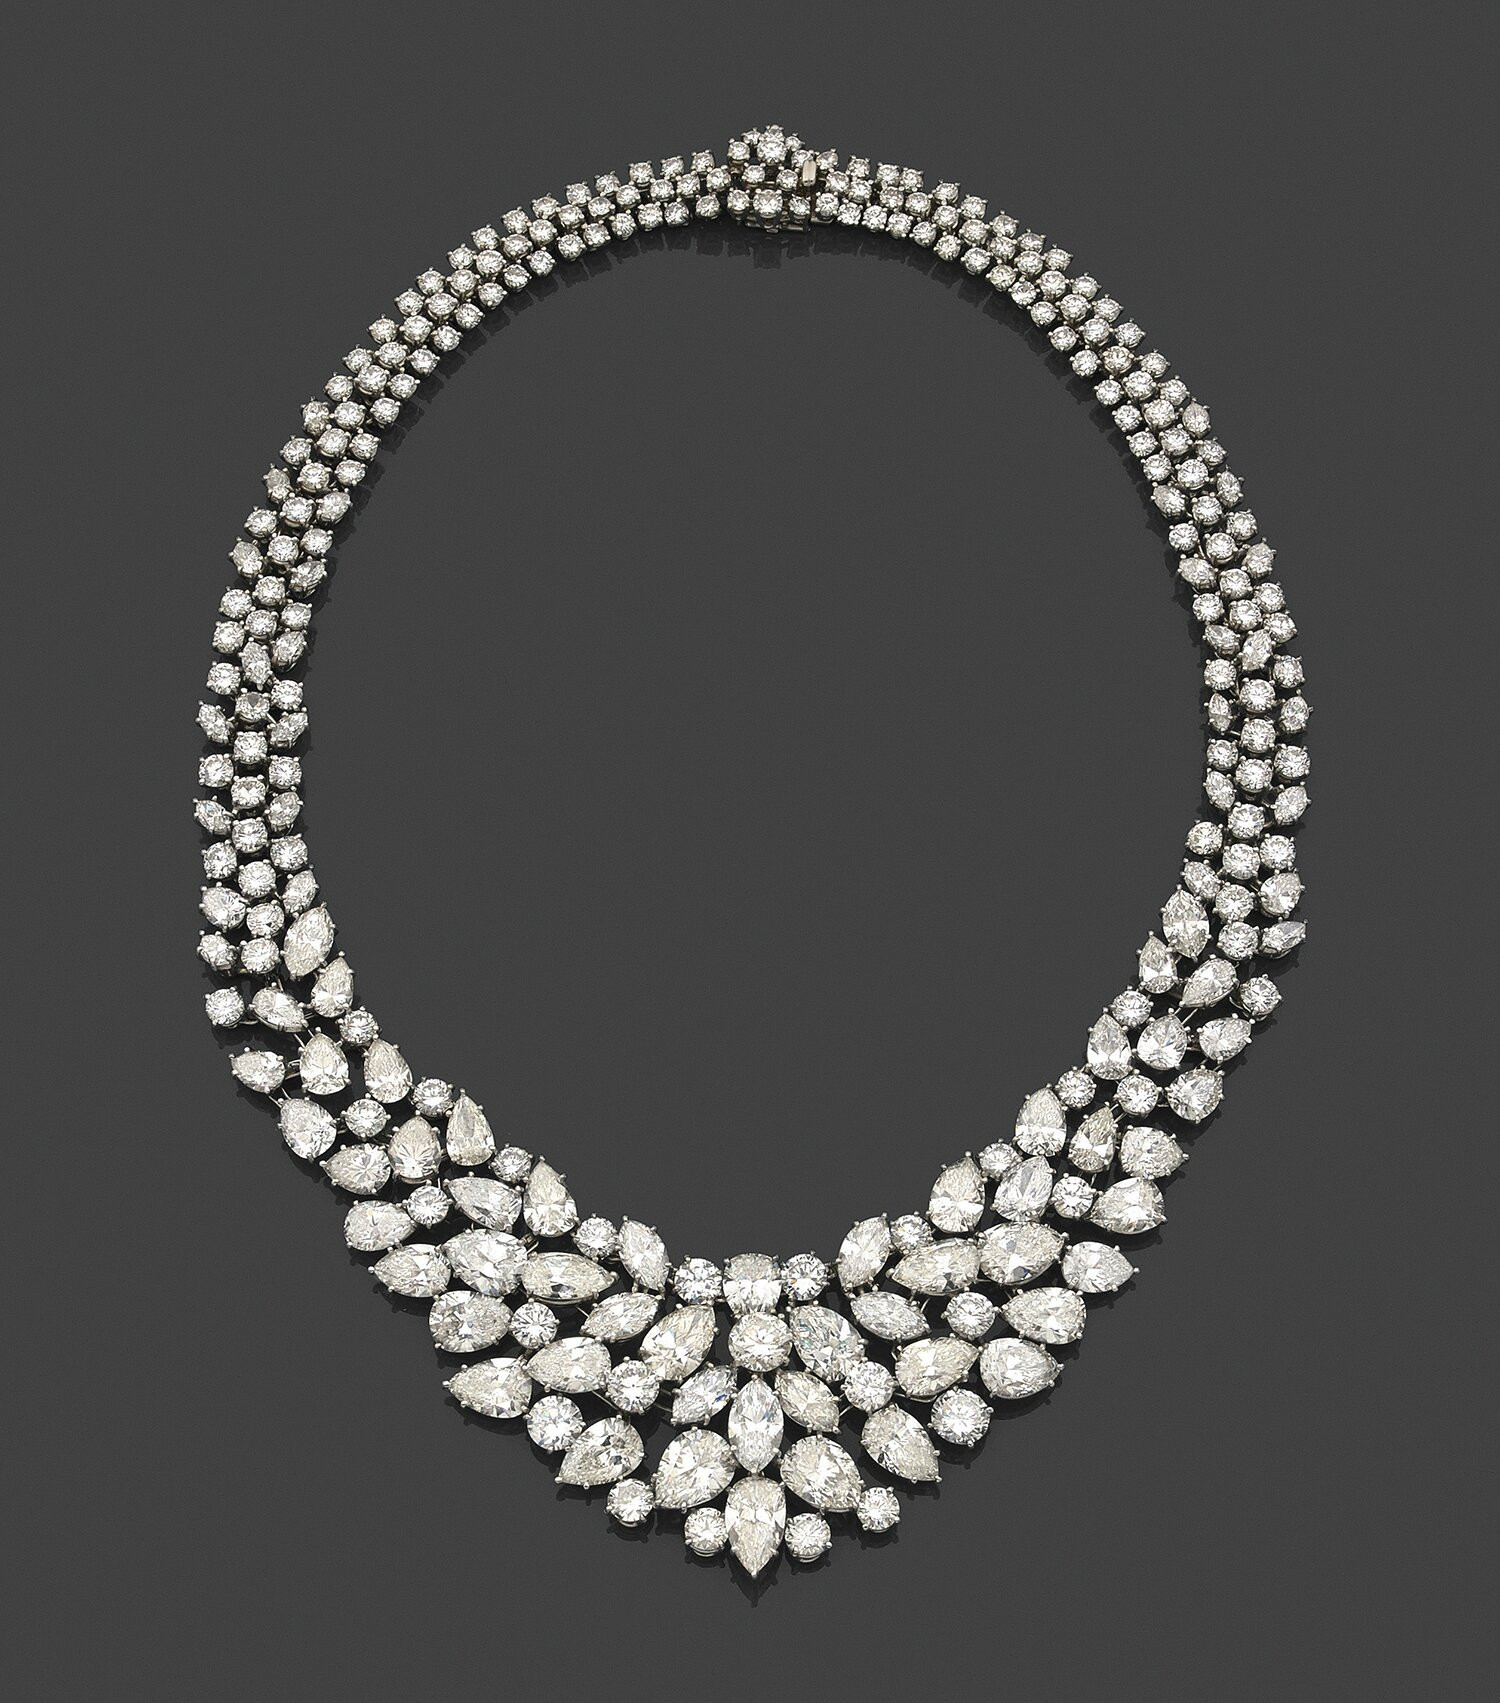 Attribué à Harry Winston, Spectaculaire collier collerette de diamants poires, navettes et brillants disposés en draperie